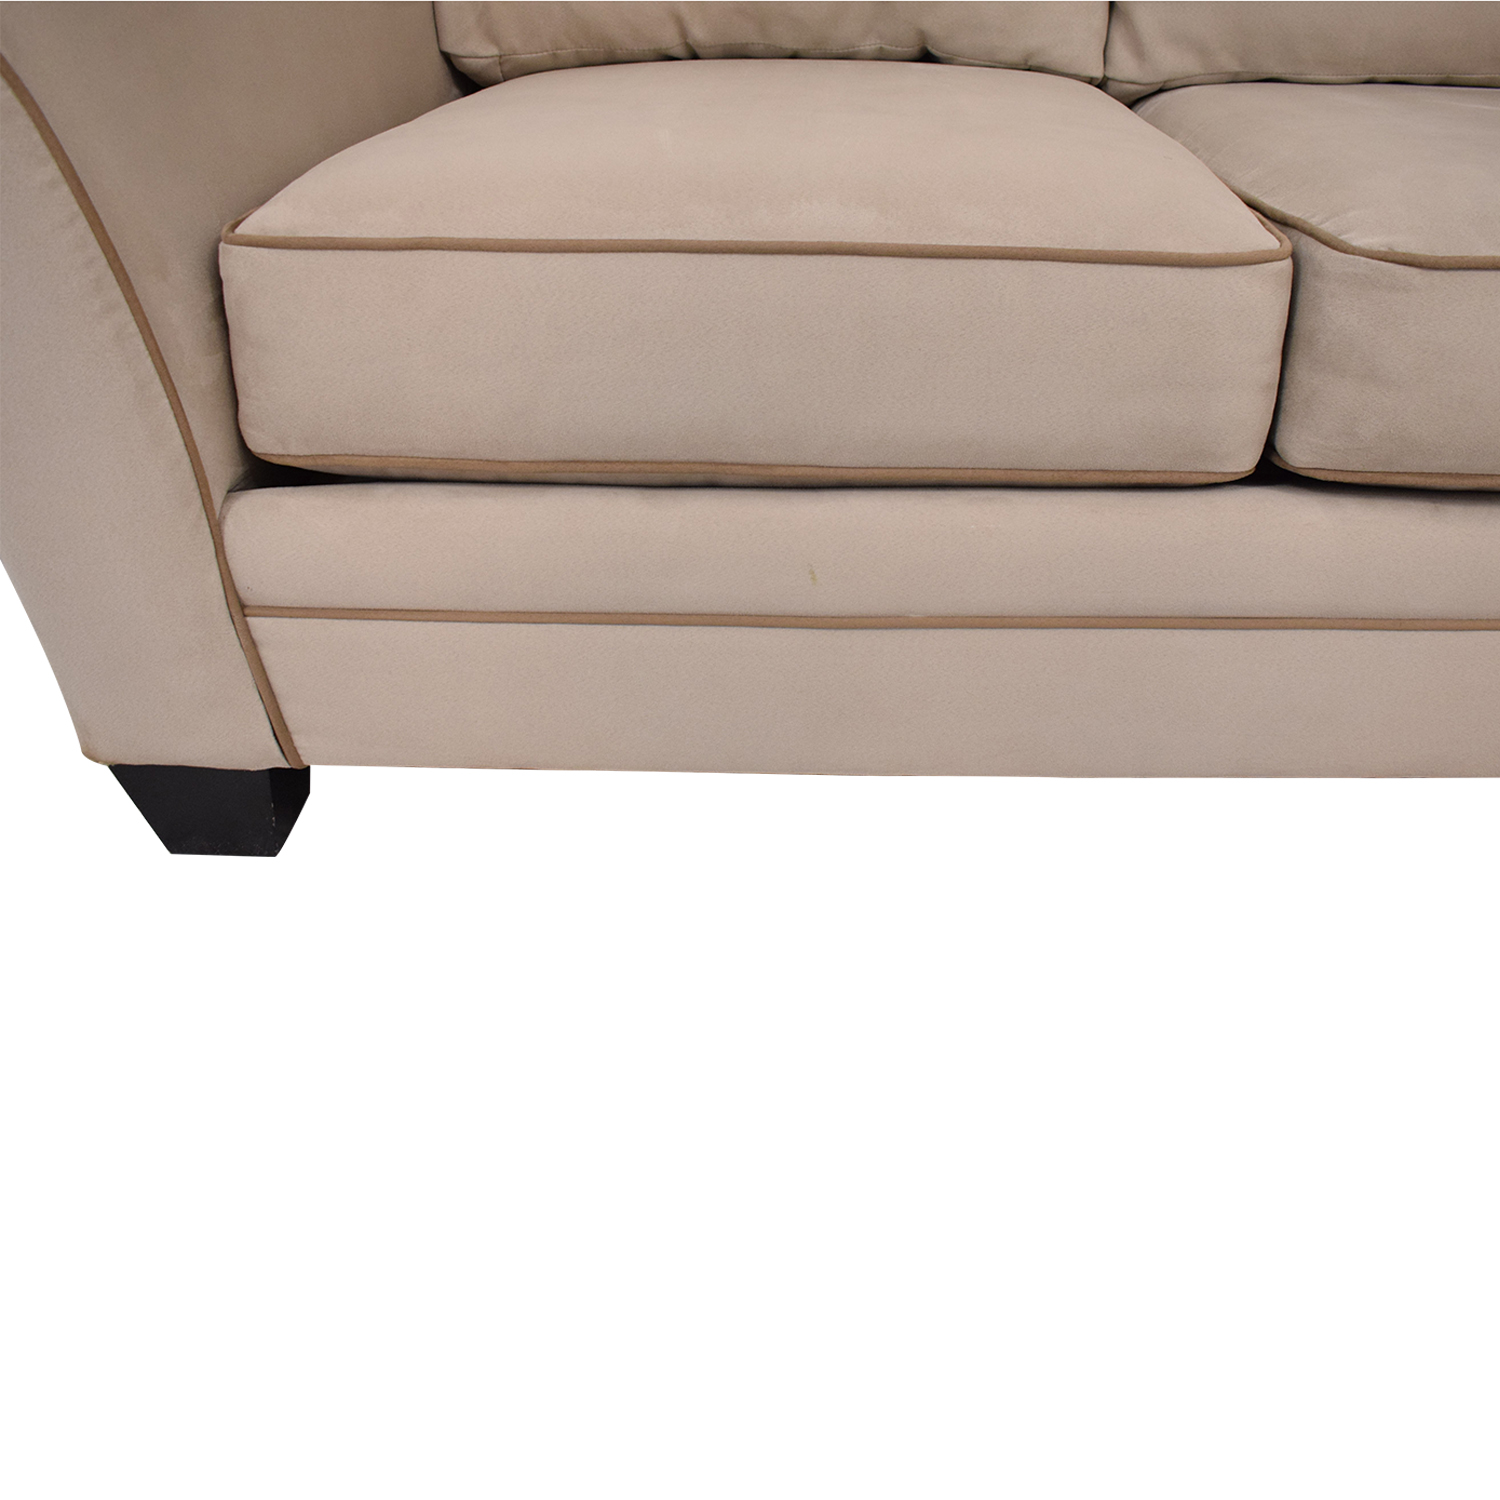 buy Raymour & Flanigan Foresthill Sofa Raymour & Flanigan Sofas